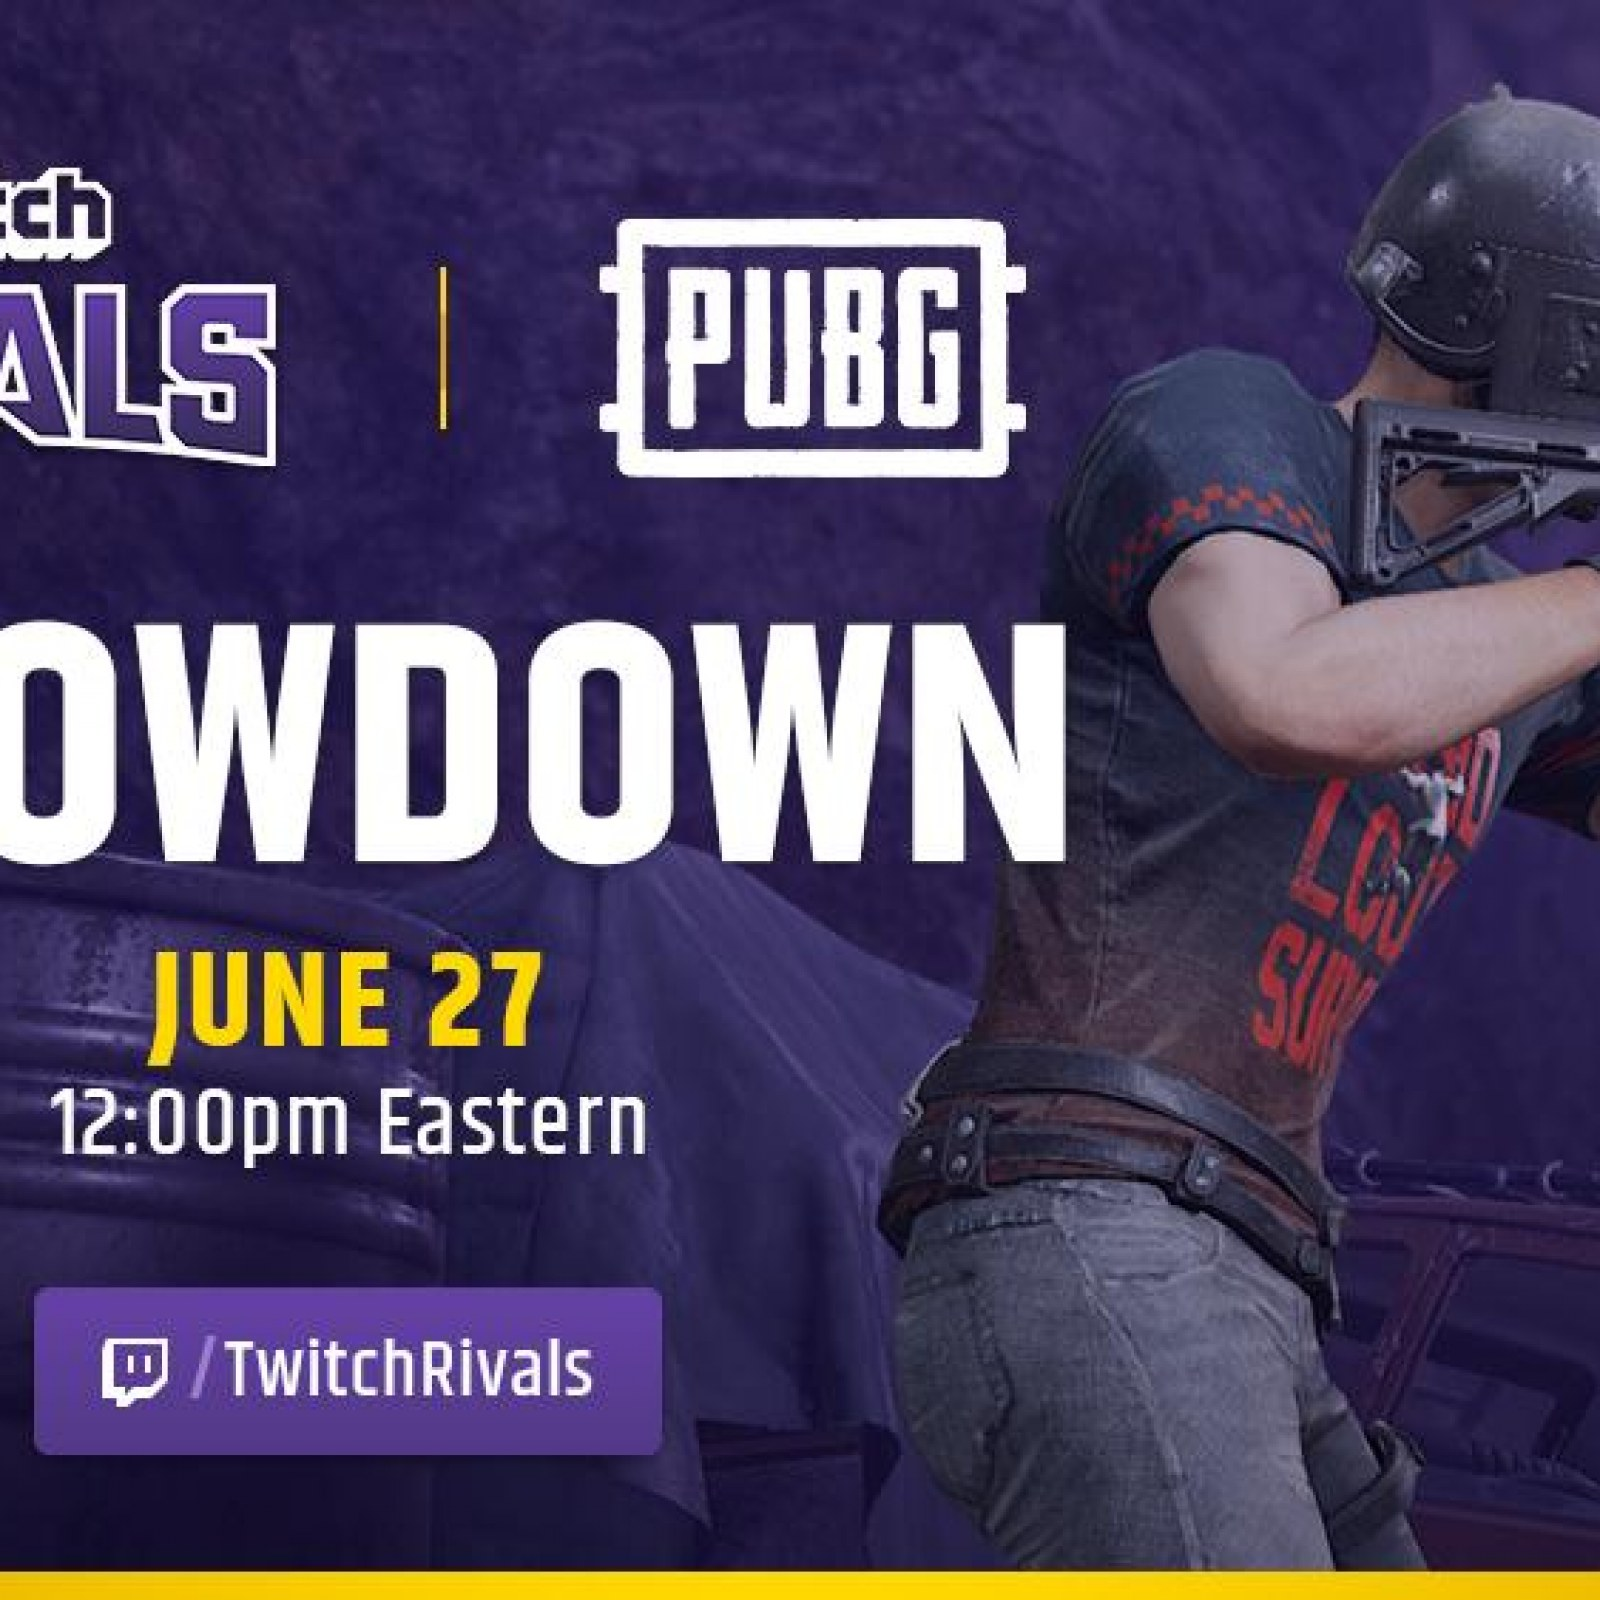 PUBG' June Twitch Rivals Showdown - Results, Standings